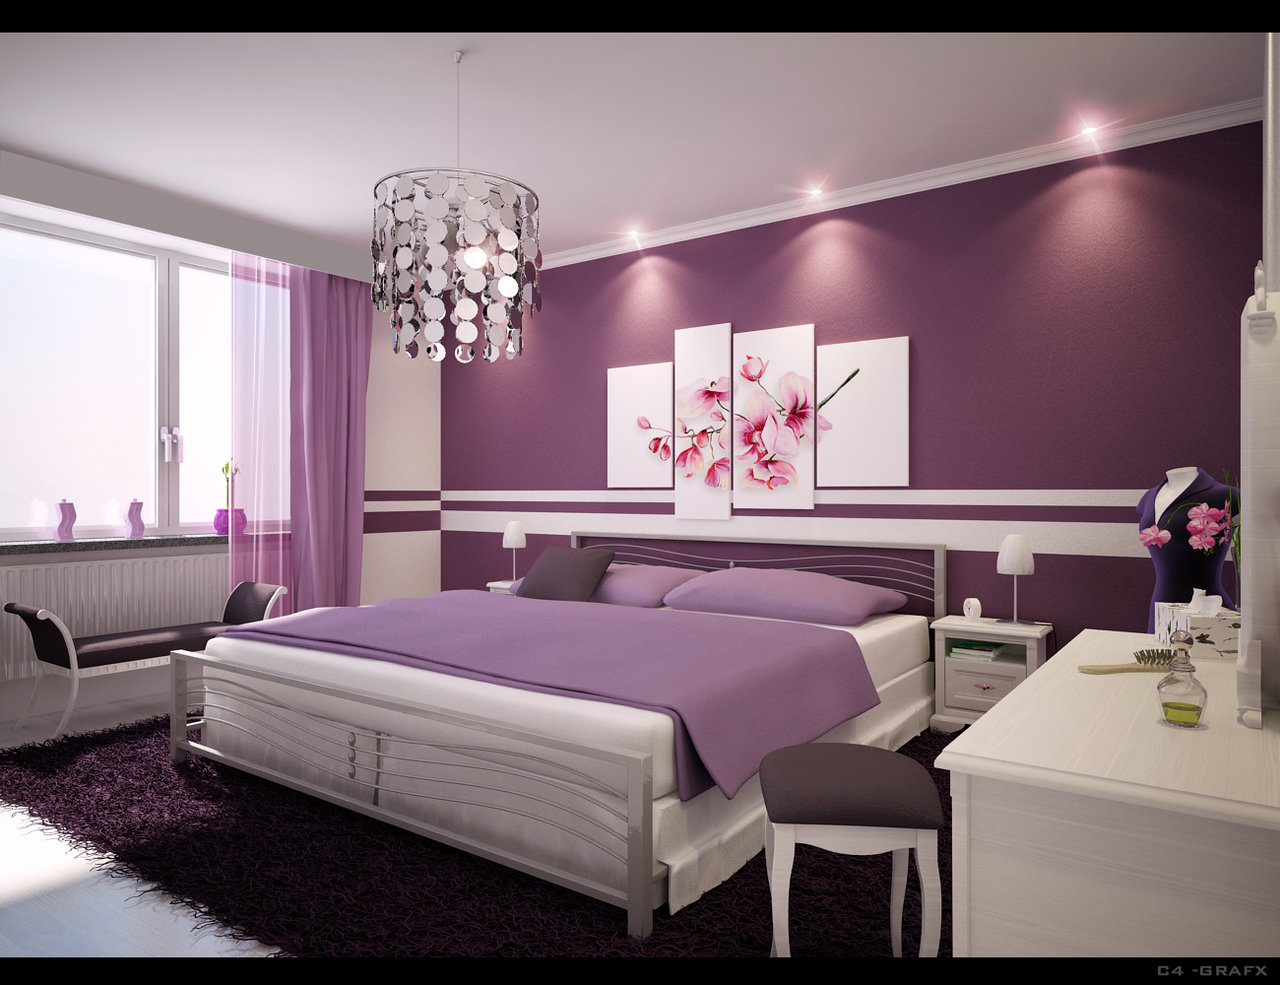 Brilliant Girls Bedroom Interior Design Ideas 1280 x 985 · 201 kB · jpeg